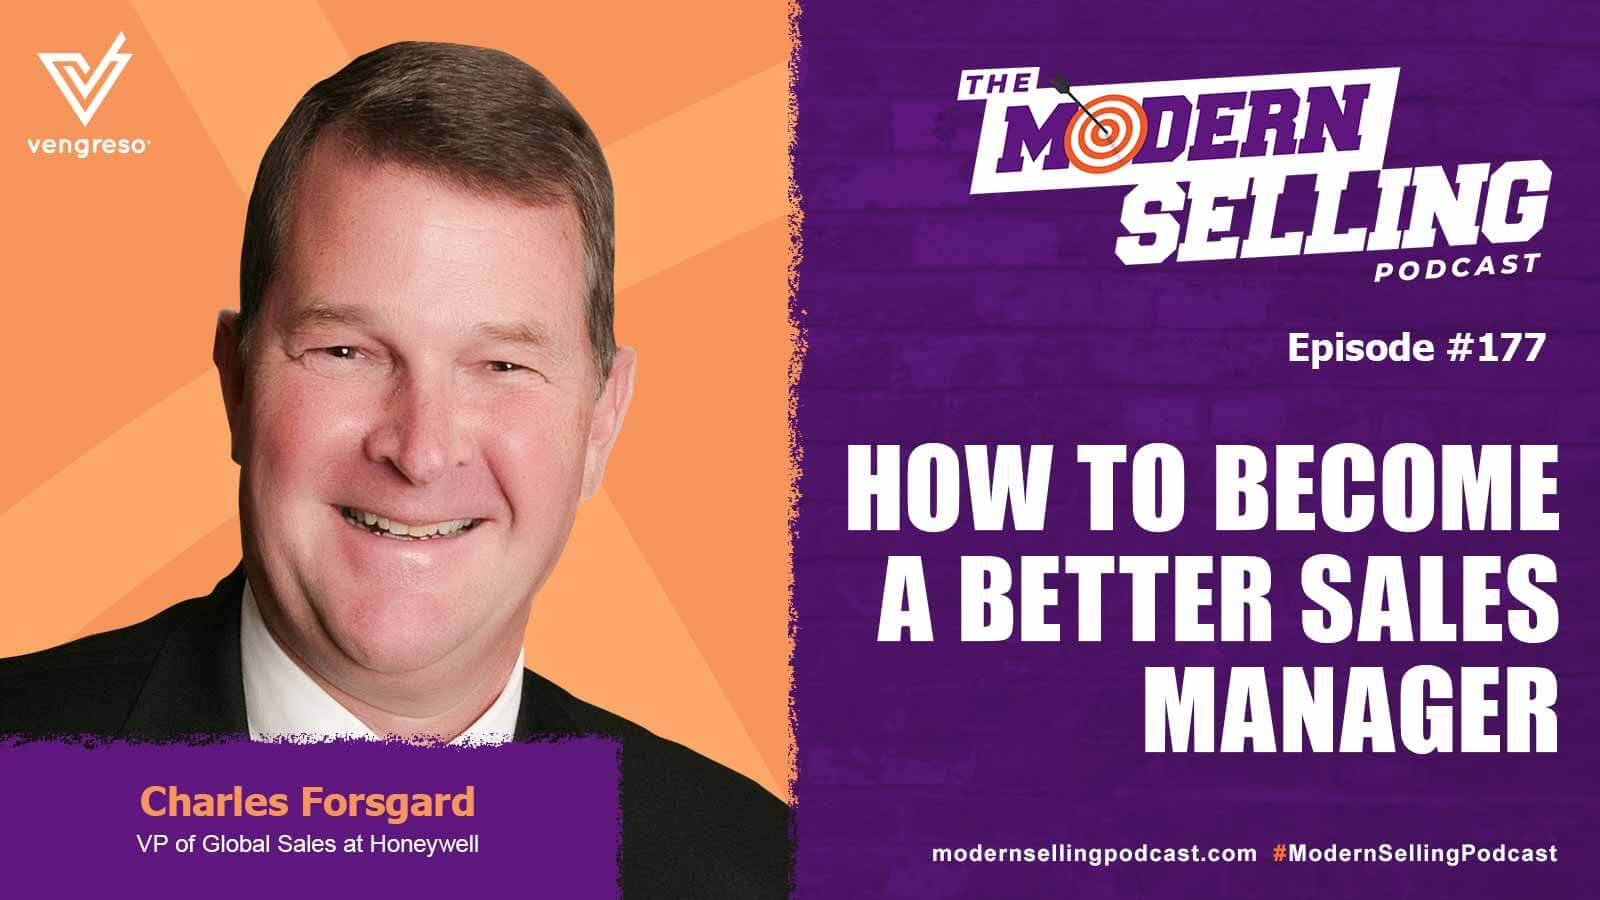 Better sales manager How to Become One